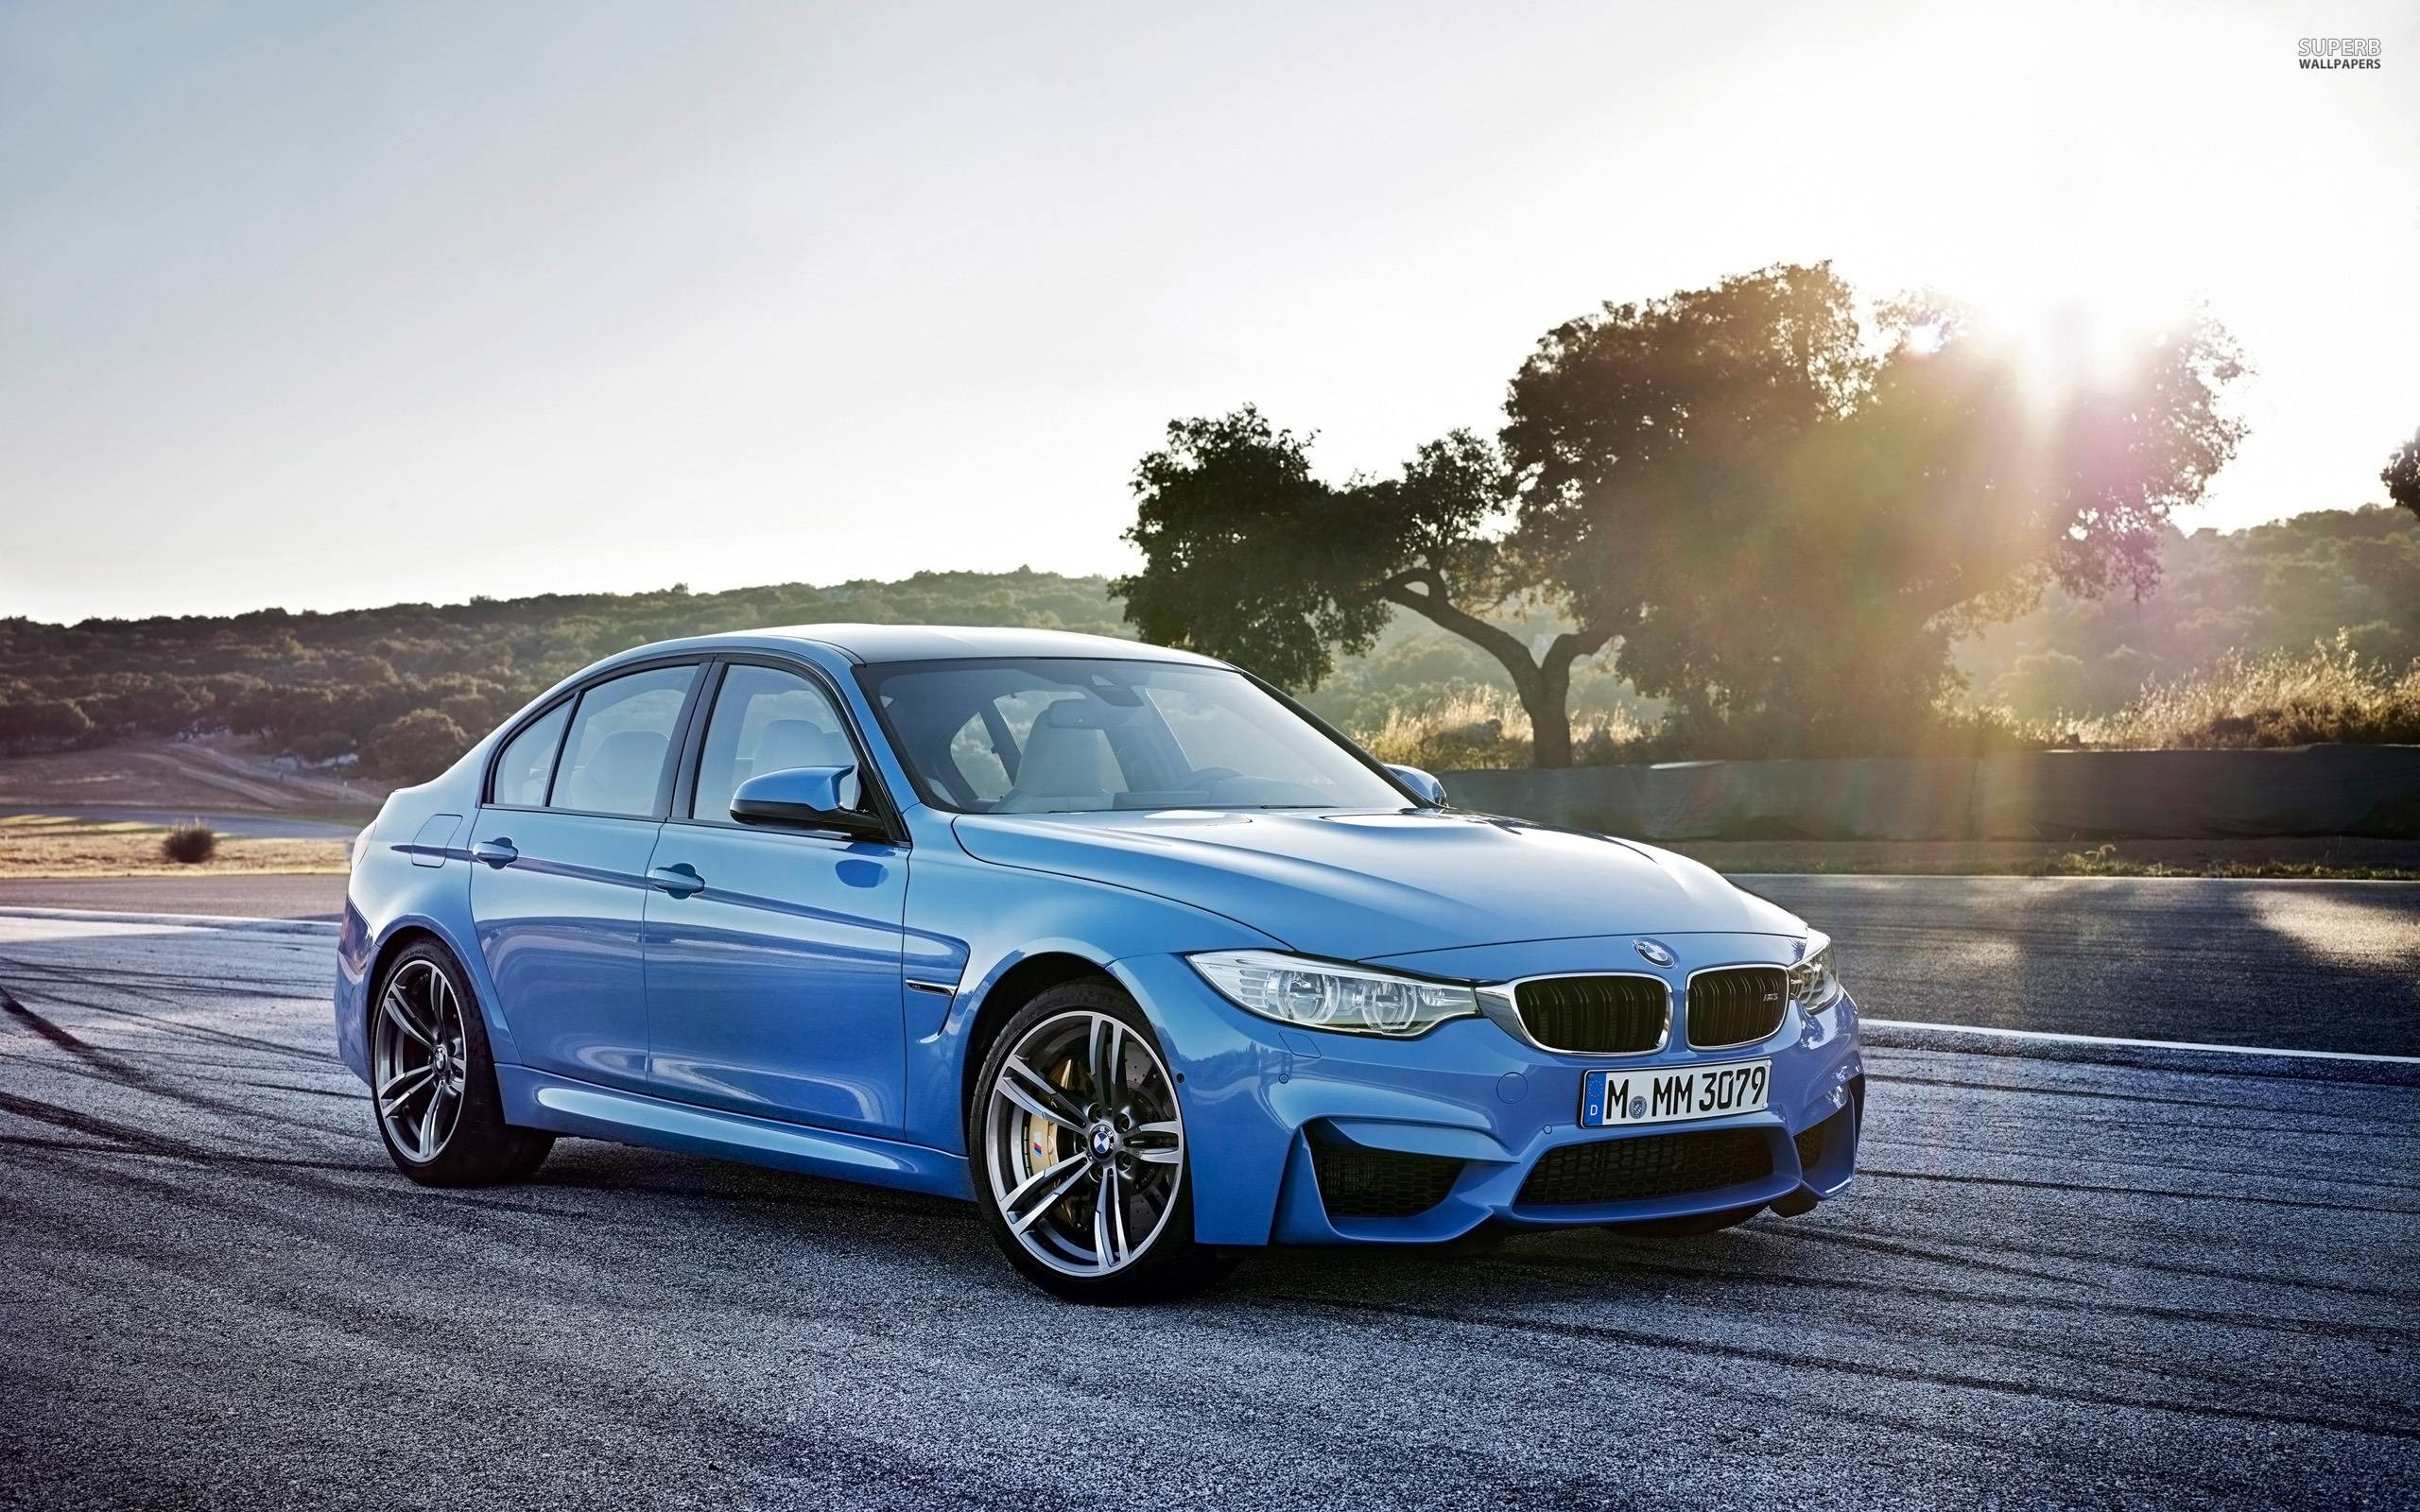 BMW M3 Wallpapers 2560x1600